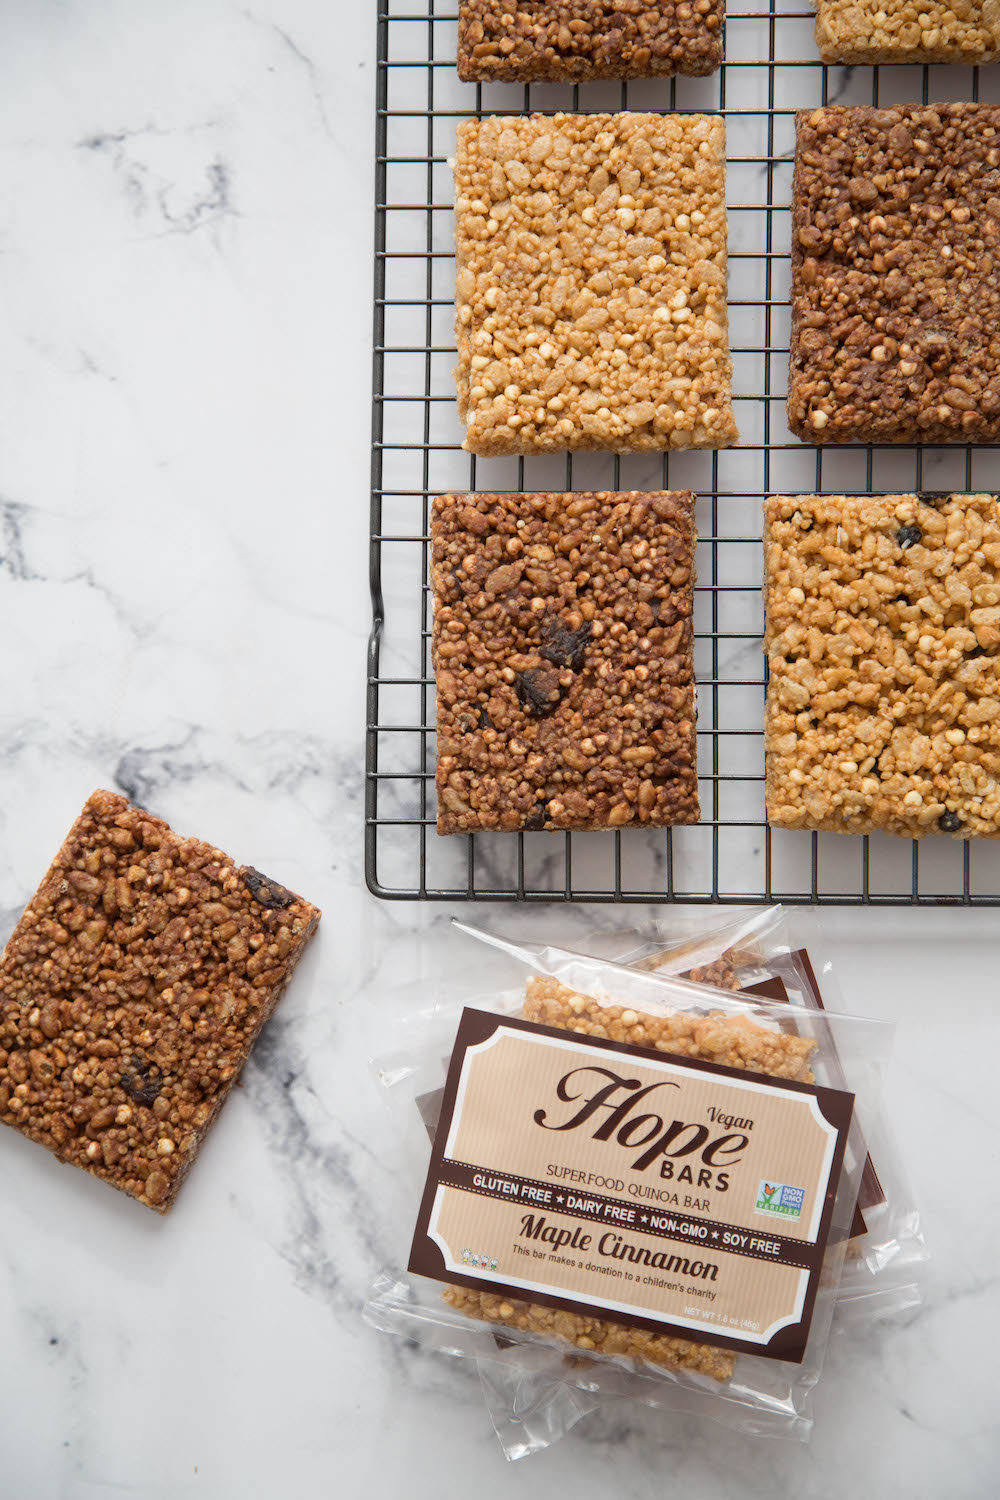 Hope Bars - Product Photography - Frenchly - 2293